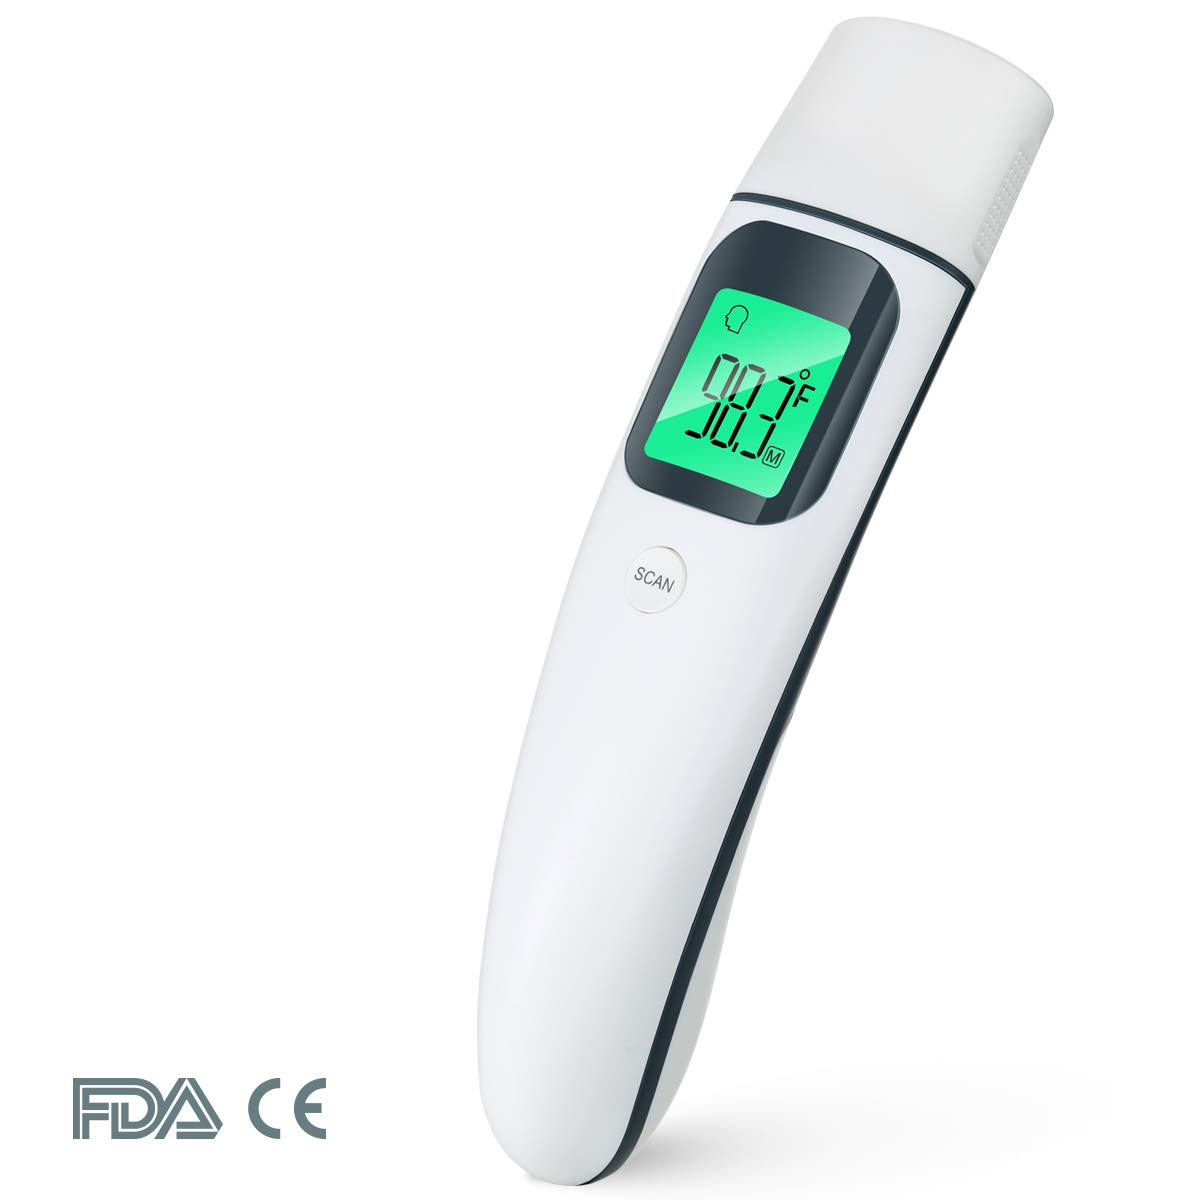 Digital Baby Thermometer for Fever, Instant Read, Infrared Medical Ear&Forehead, Prymax FC-IR101 FDA Approved. Temporal. for Kids, Infant, Adults, at Home. LCD Display, 35 Readings, 2 AAA Batteries.